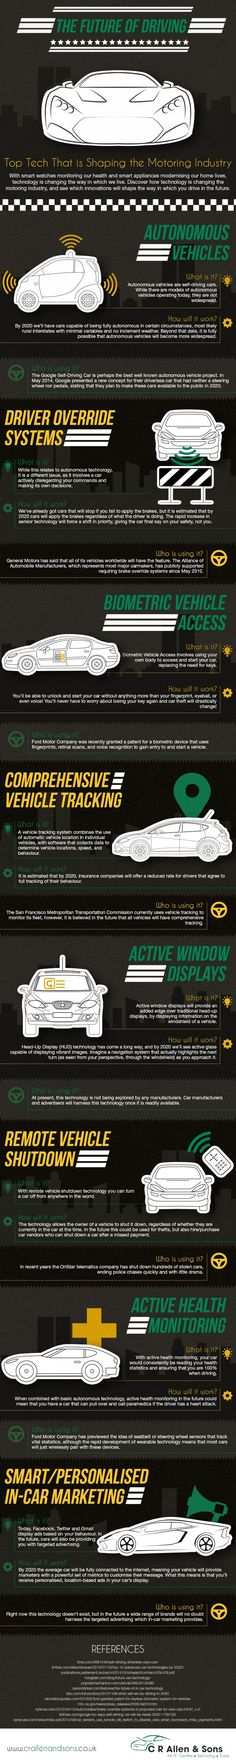 The Future of Driving – Top Tech Shaping Motoring Industry #infographic…